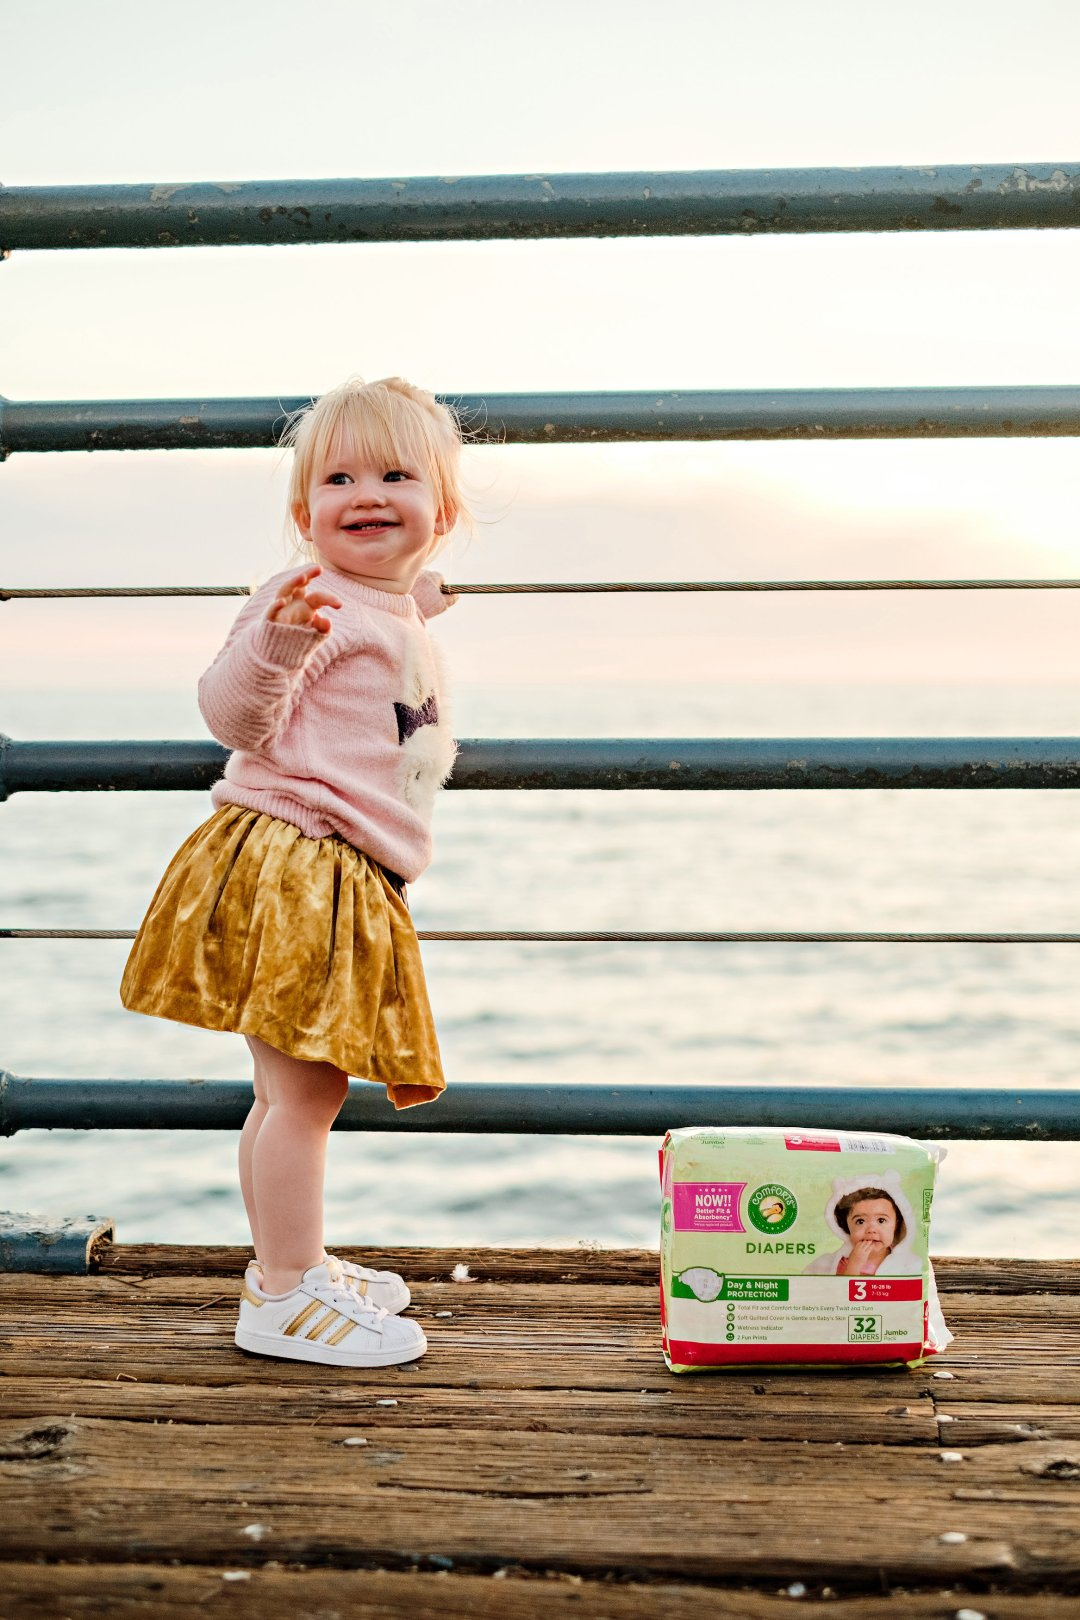 kroger comforts wipes - Kroger Comfort Wipes and Diapers by Atlanta mom blogger Happily Hughes